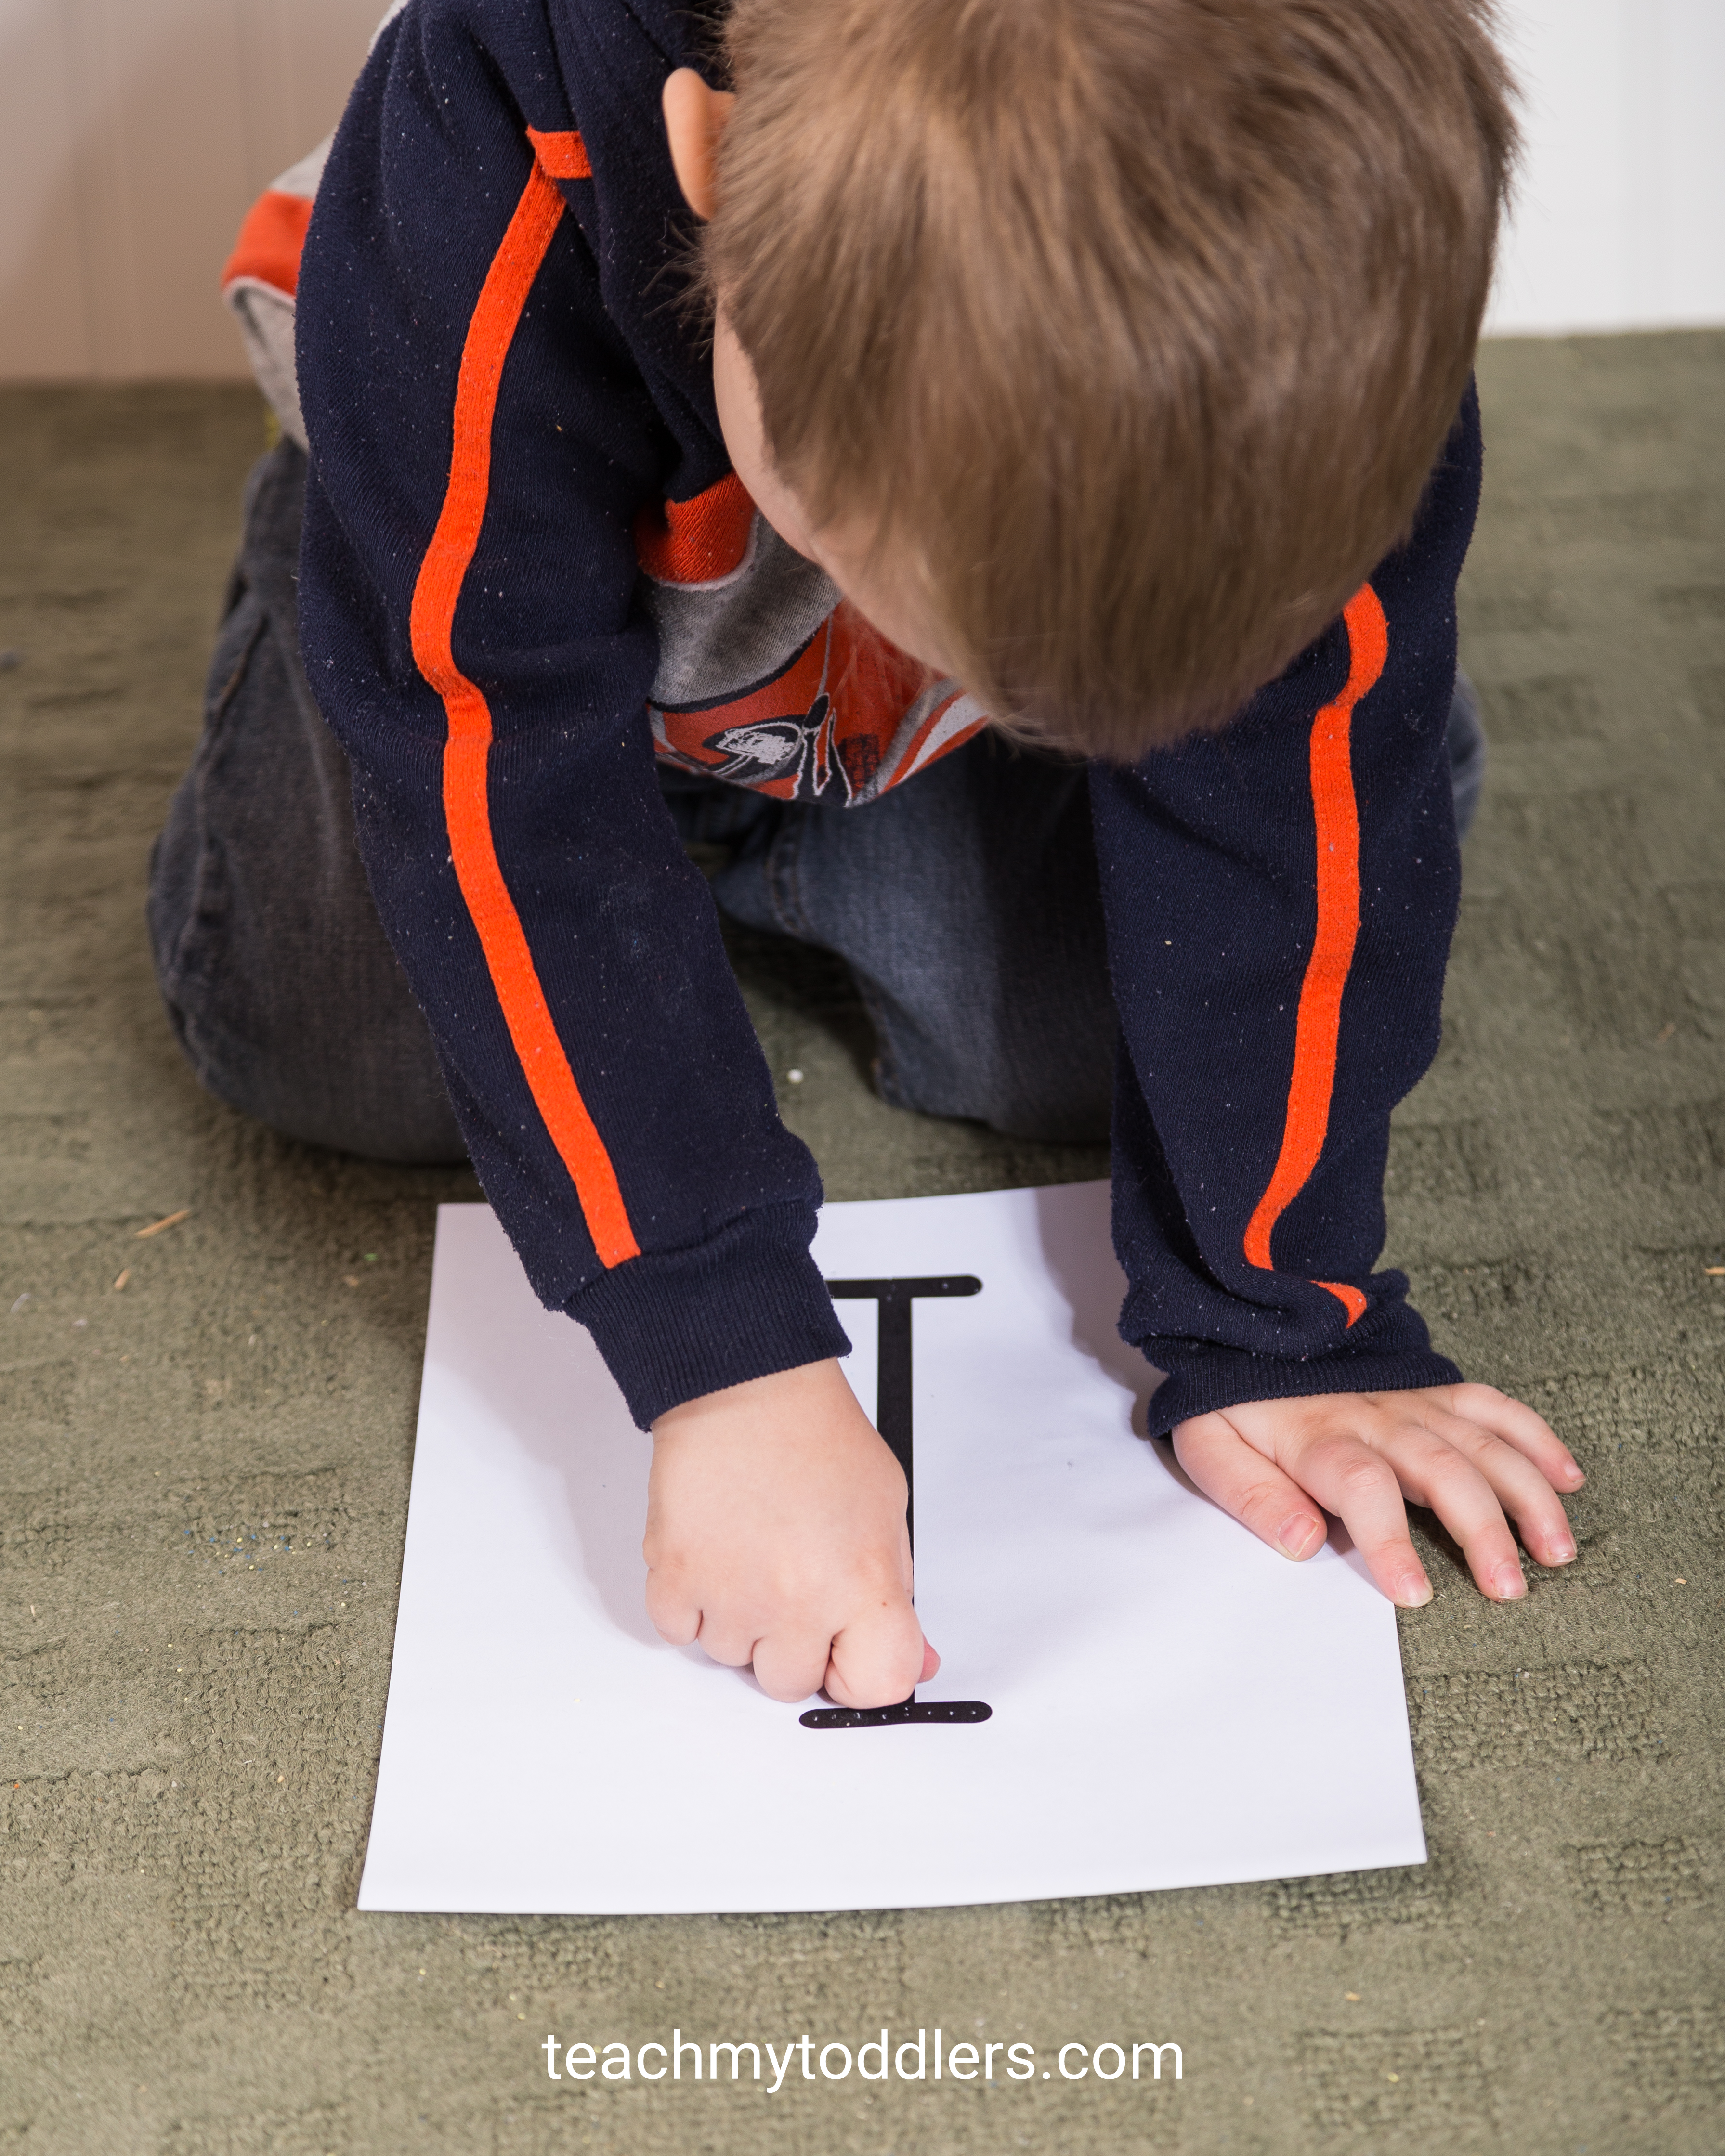 Teach your toddlers the letter i using these fun insect activities